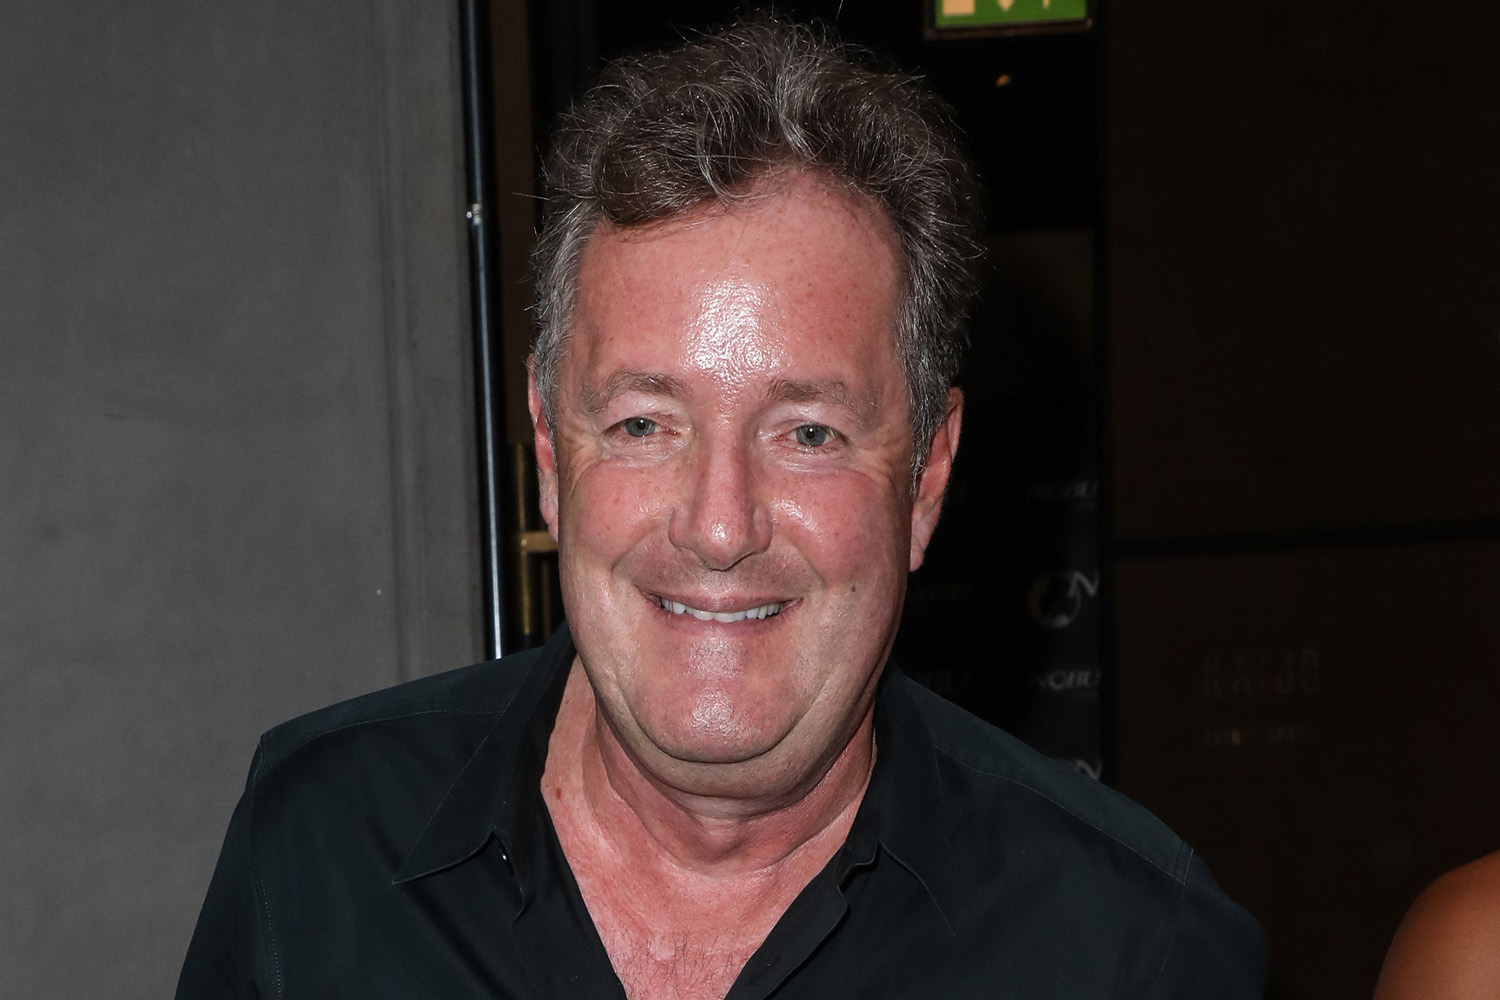 Piers Morgan responds on Twitter after 'uncomfortable' interview sparks complaints